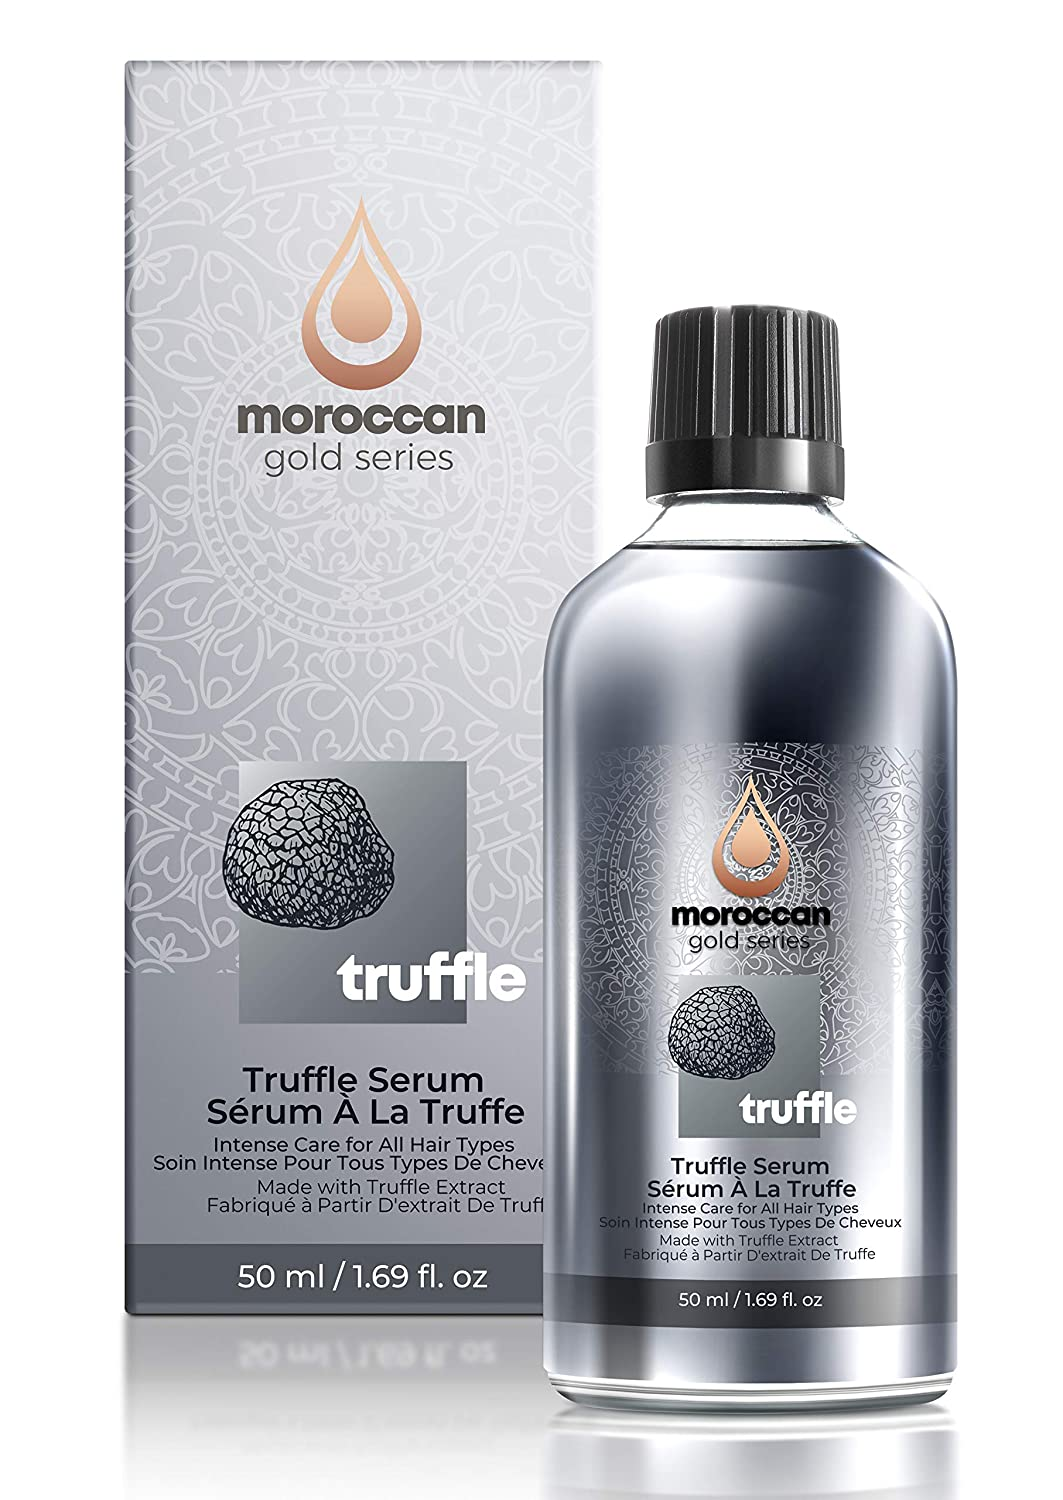 Moroccan Gold Series Black Truffle Serum